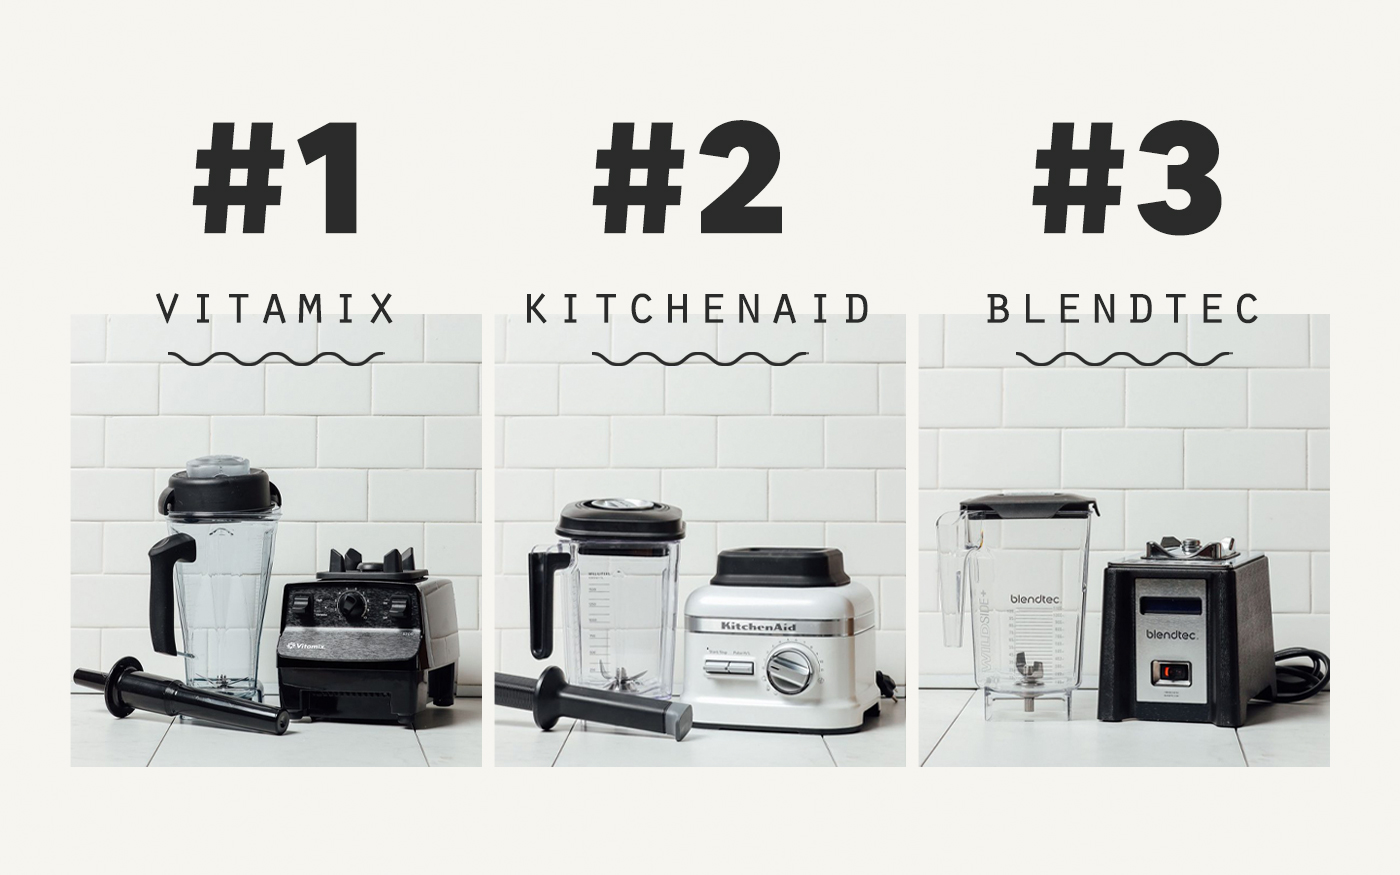 Showing the first, second, and third place winners of our Best Blenders Review